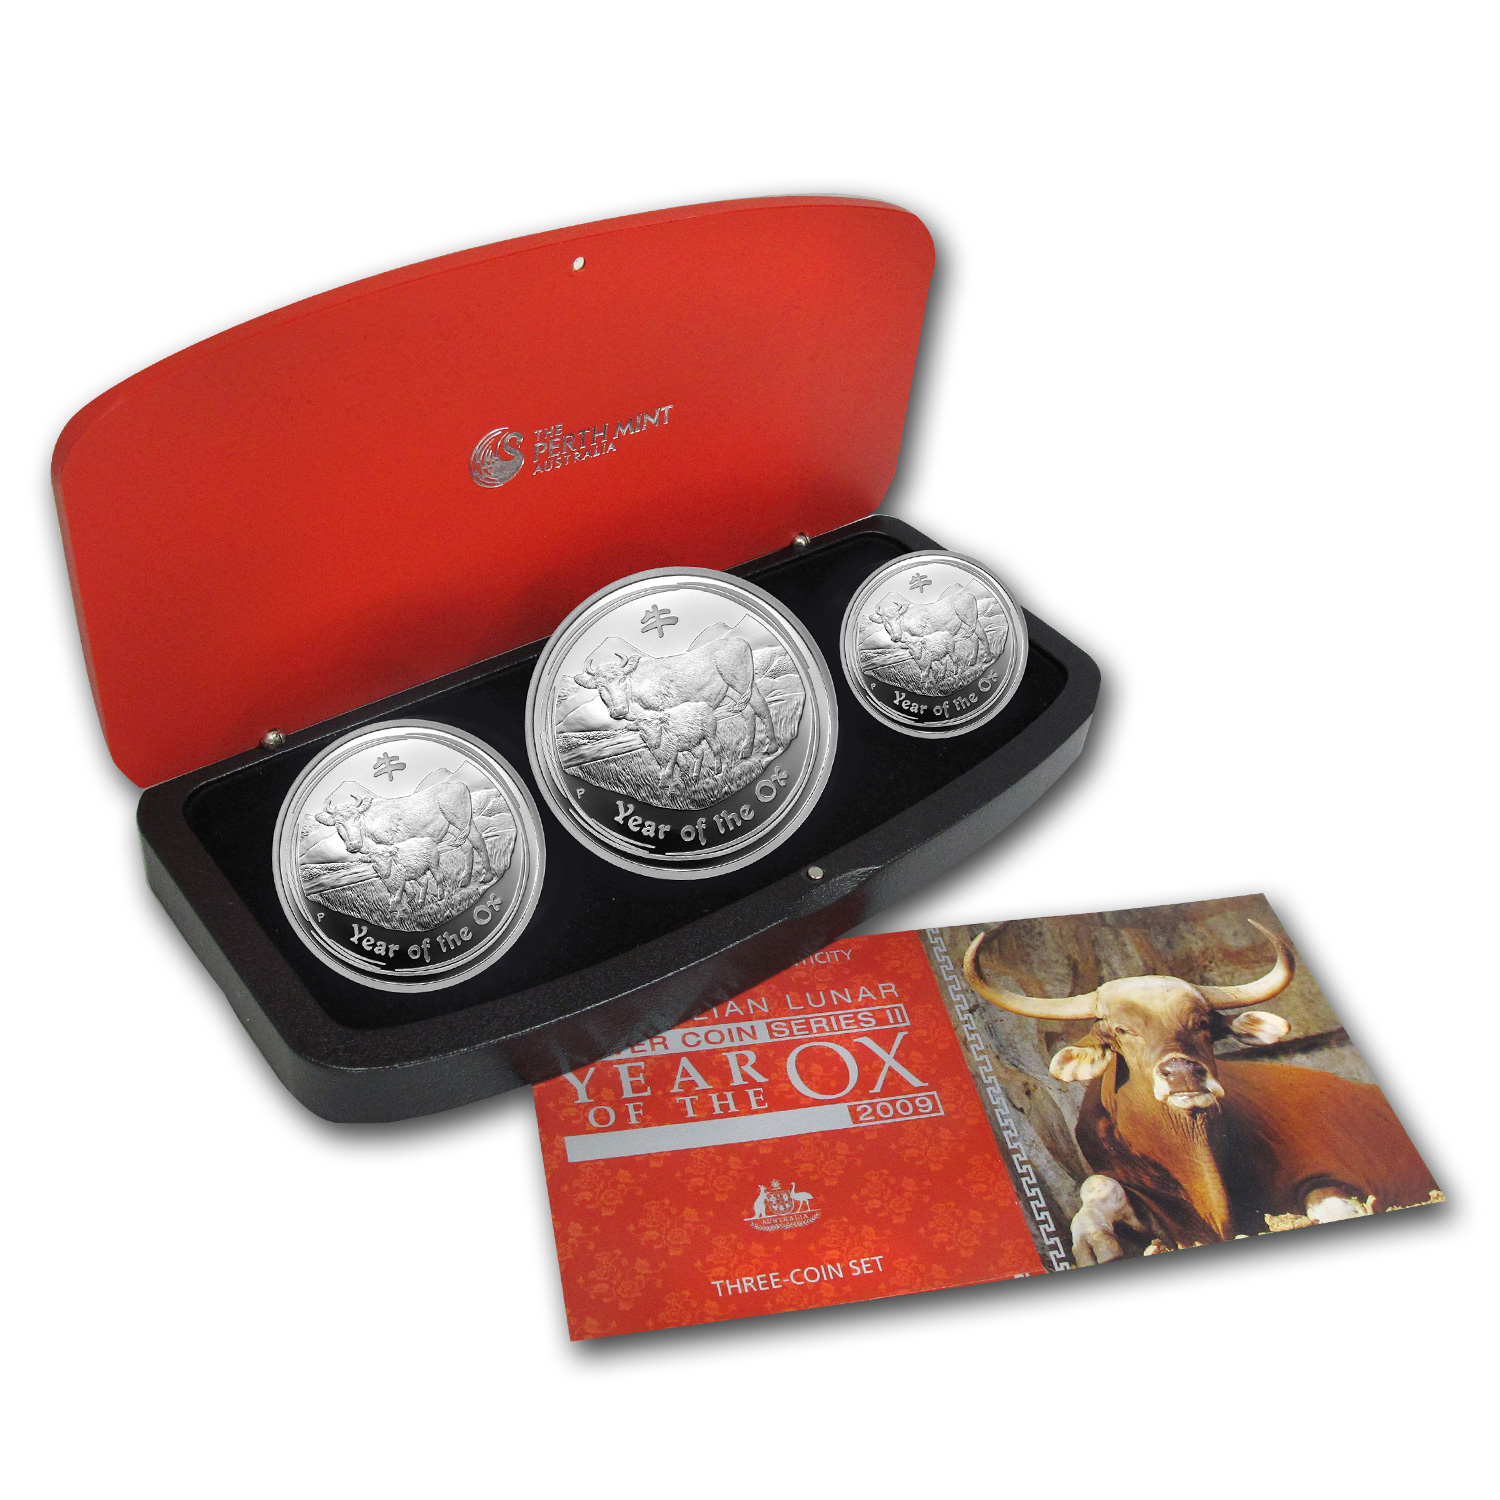 2009 Year of the Ox - Silver 3-Coin Proof Set - (Series II)